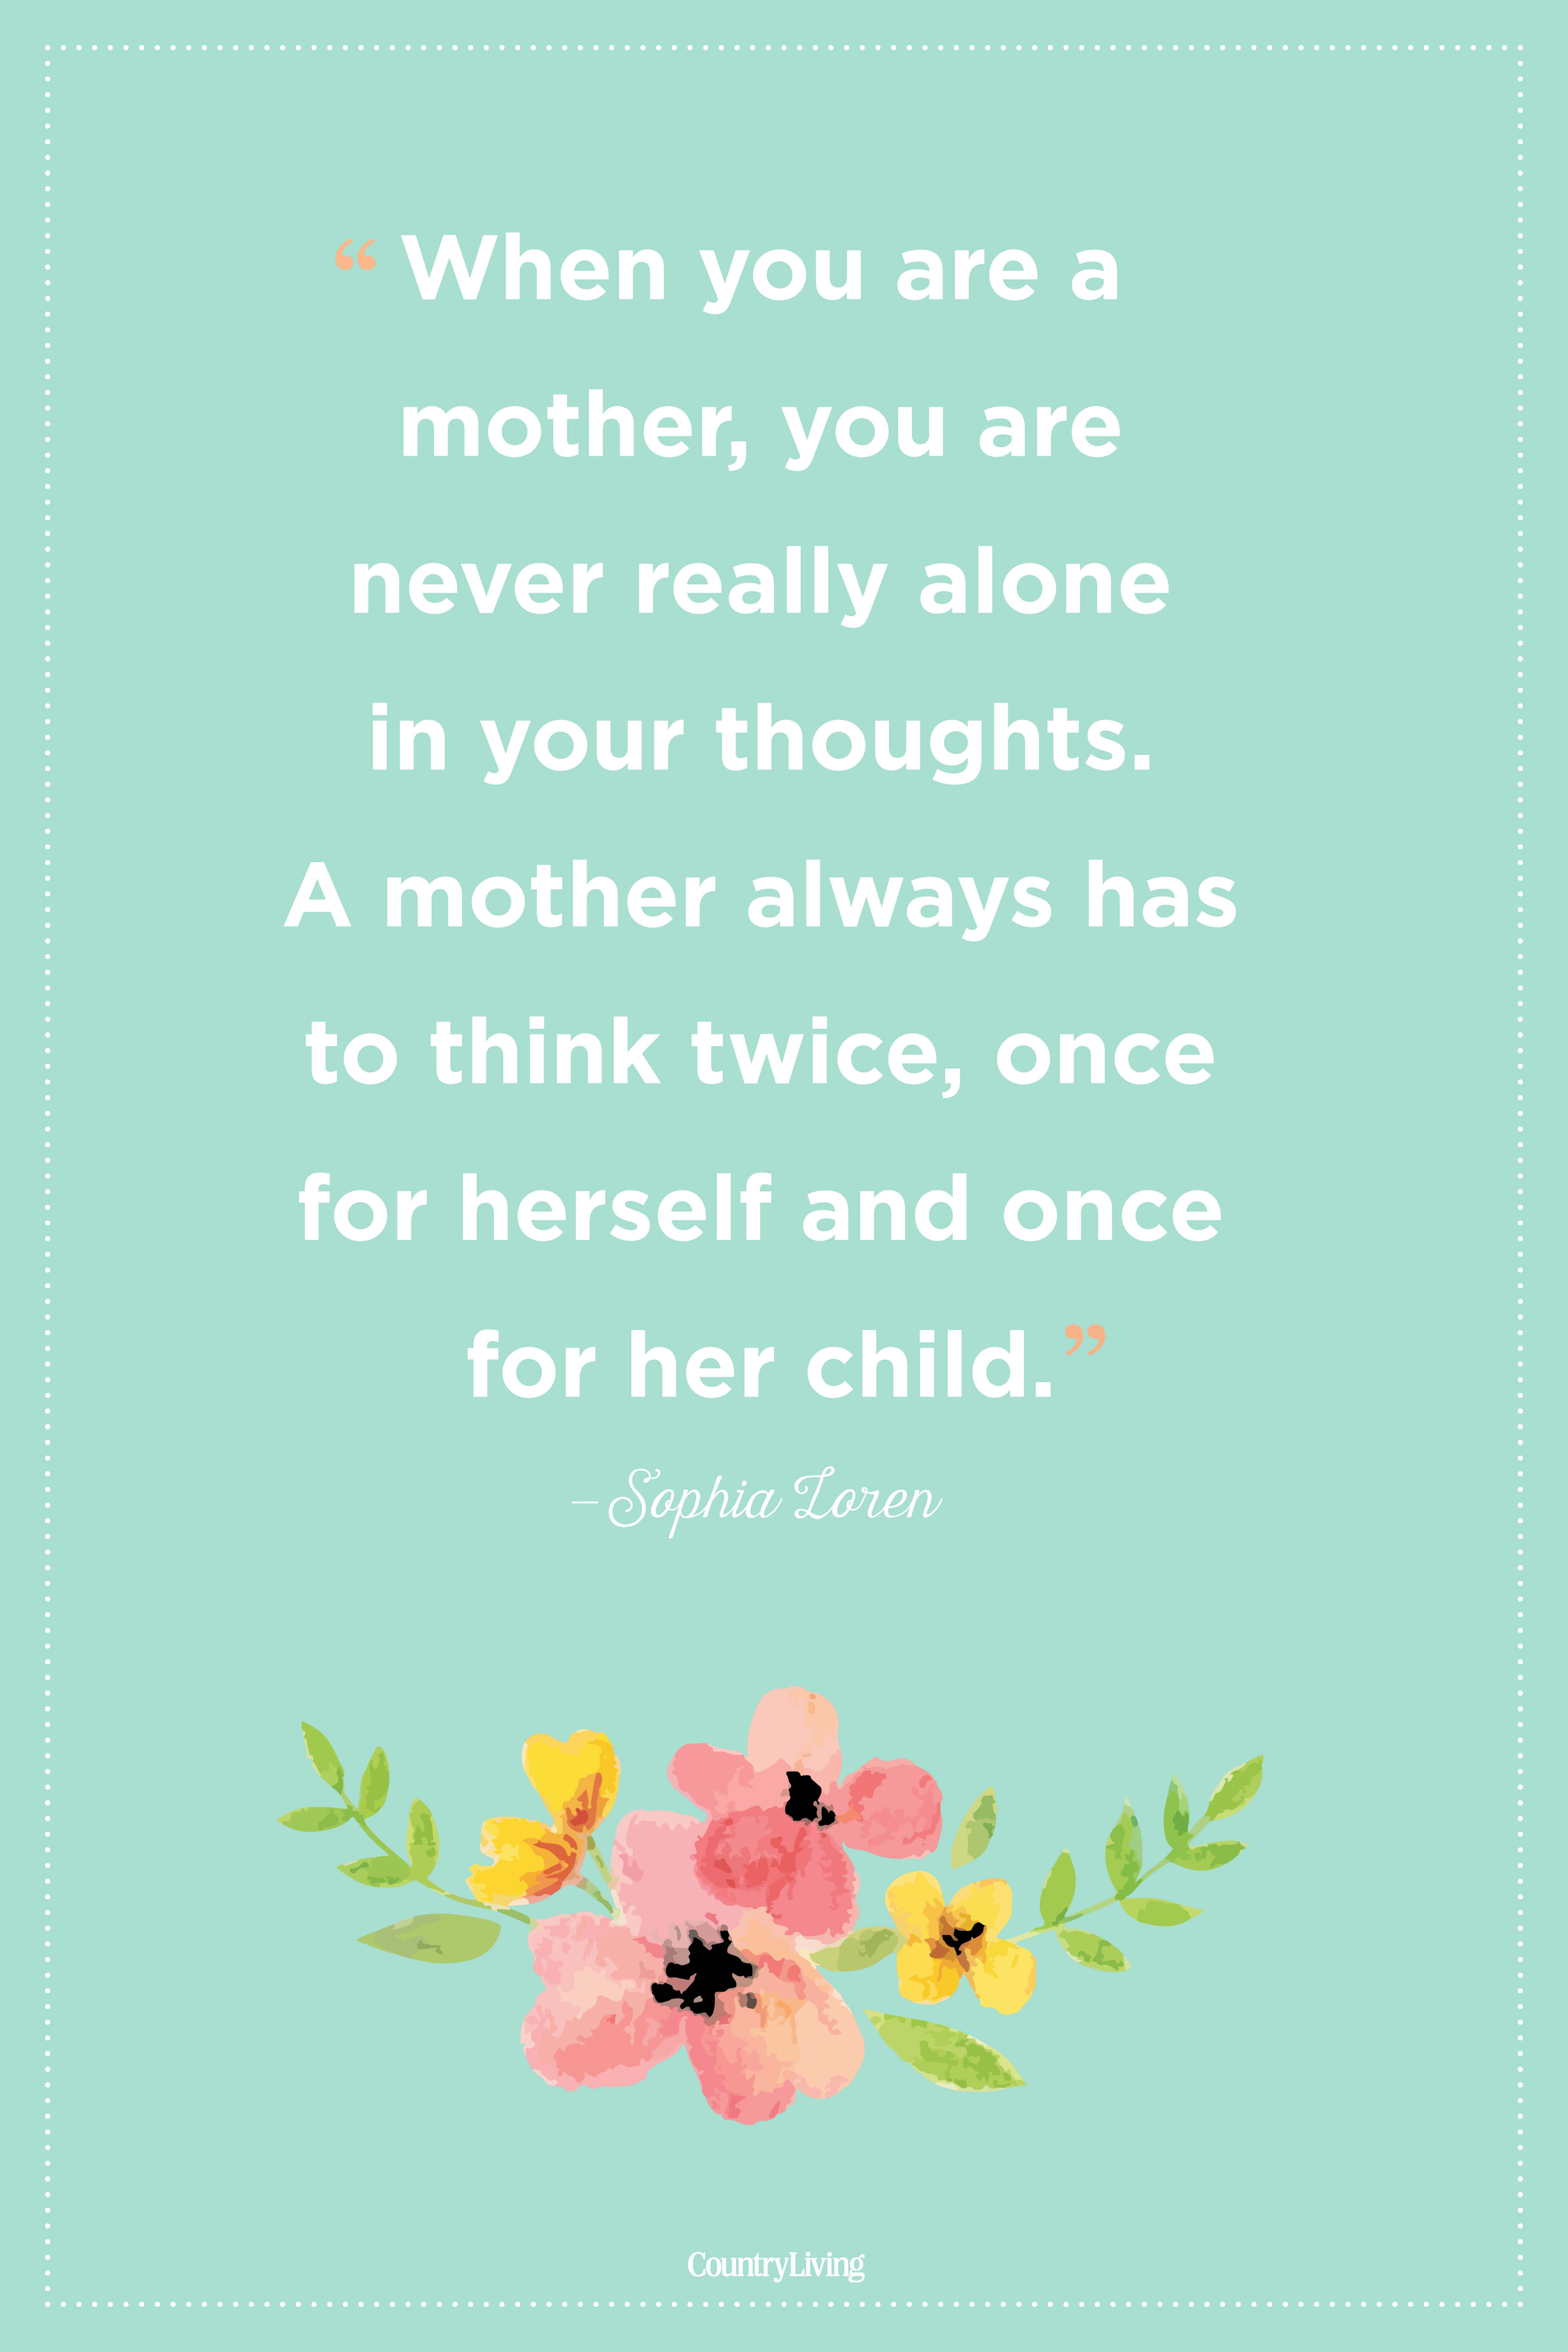 sophia loren mothers day quote